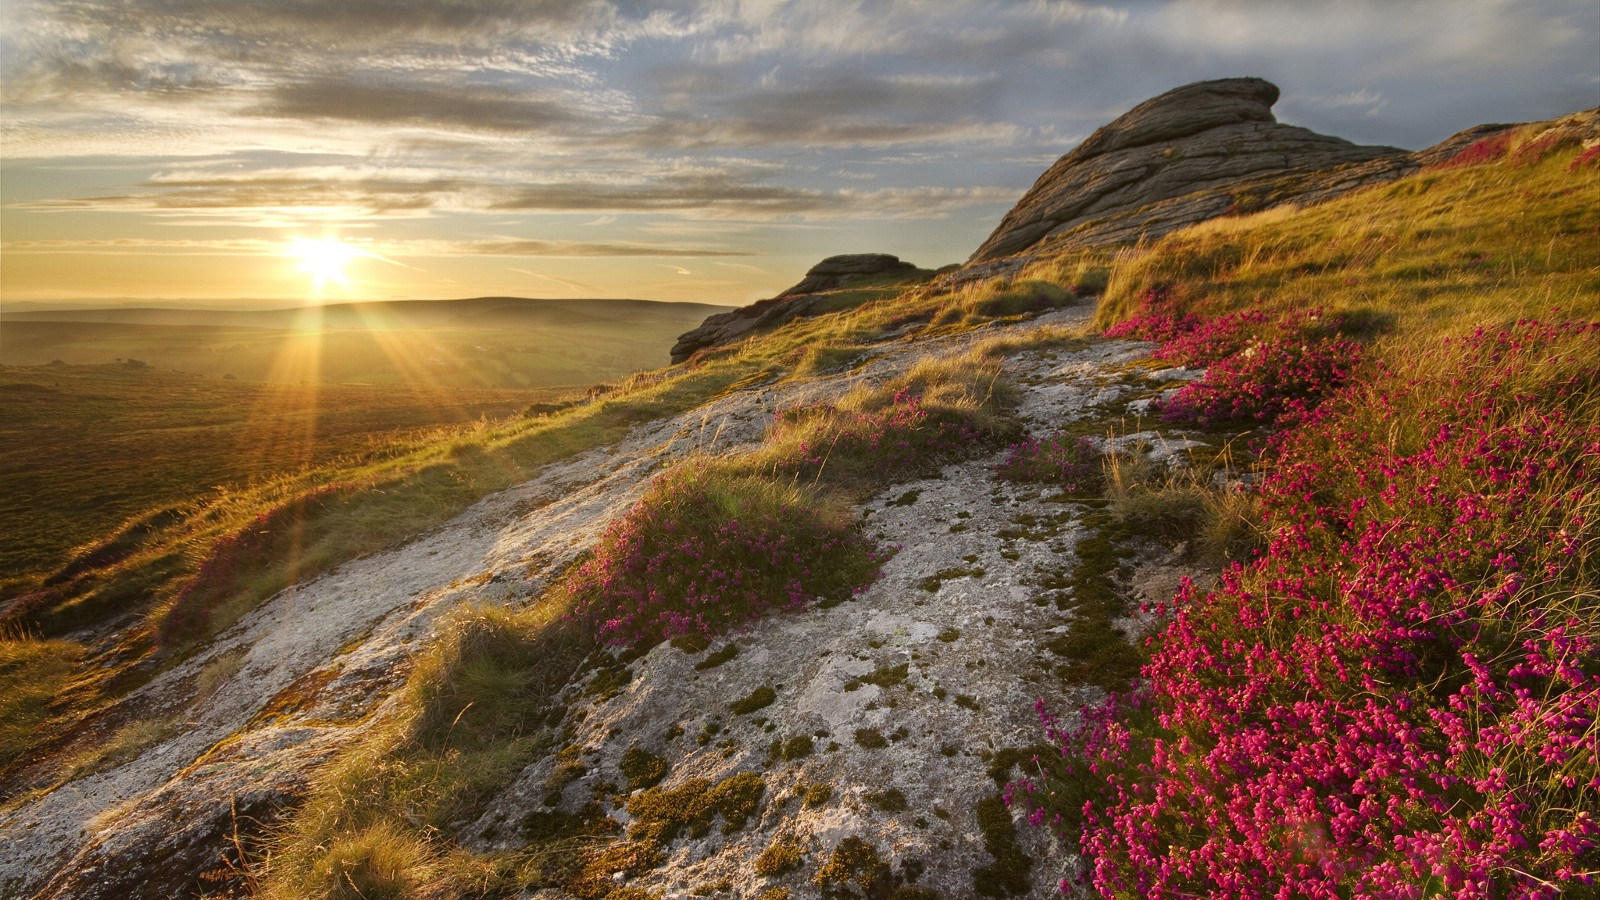 Sunset near Haytor, Dartmoor National Park, Devon, UK